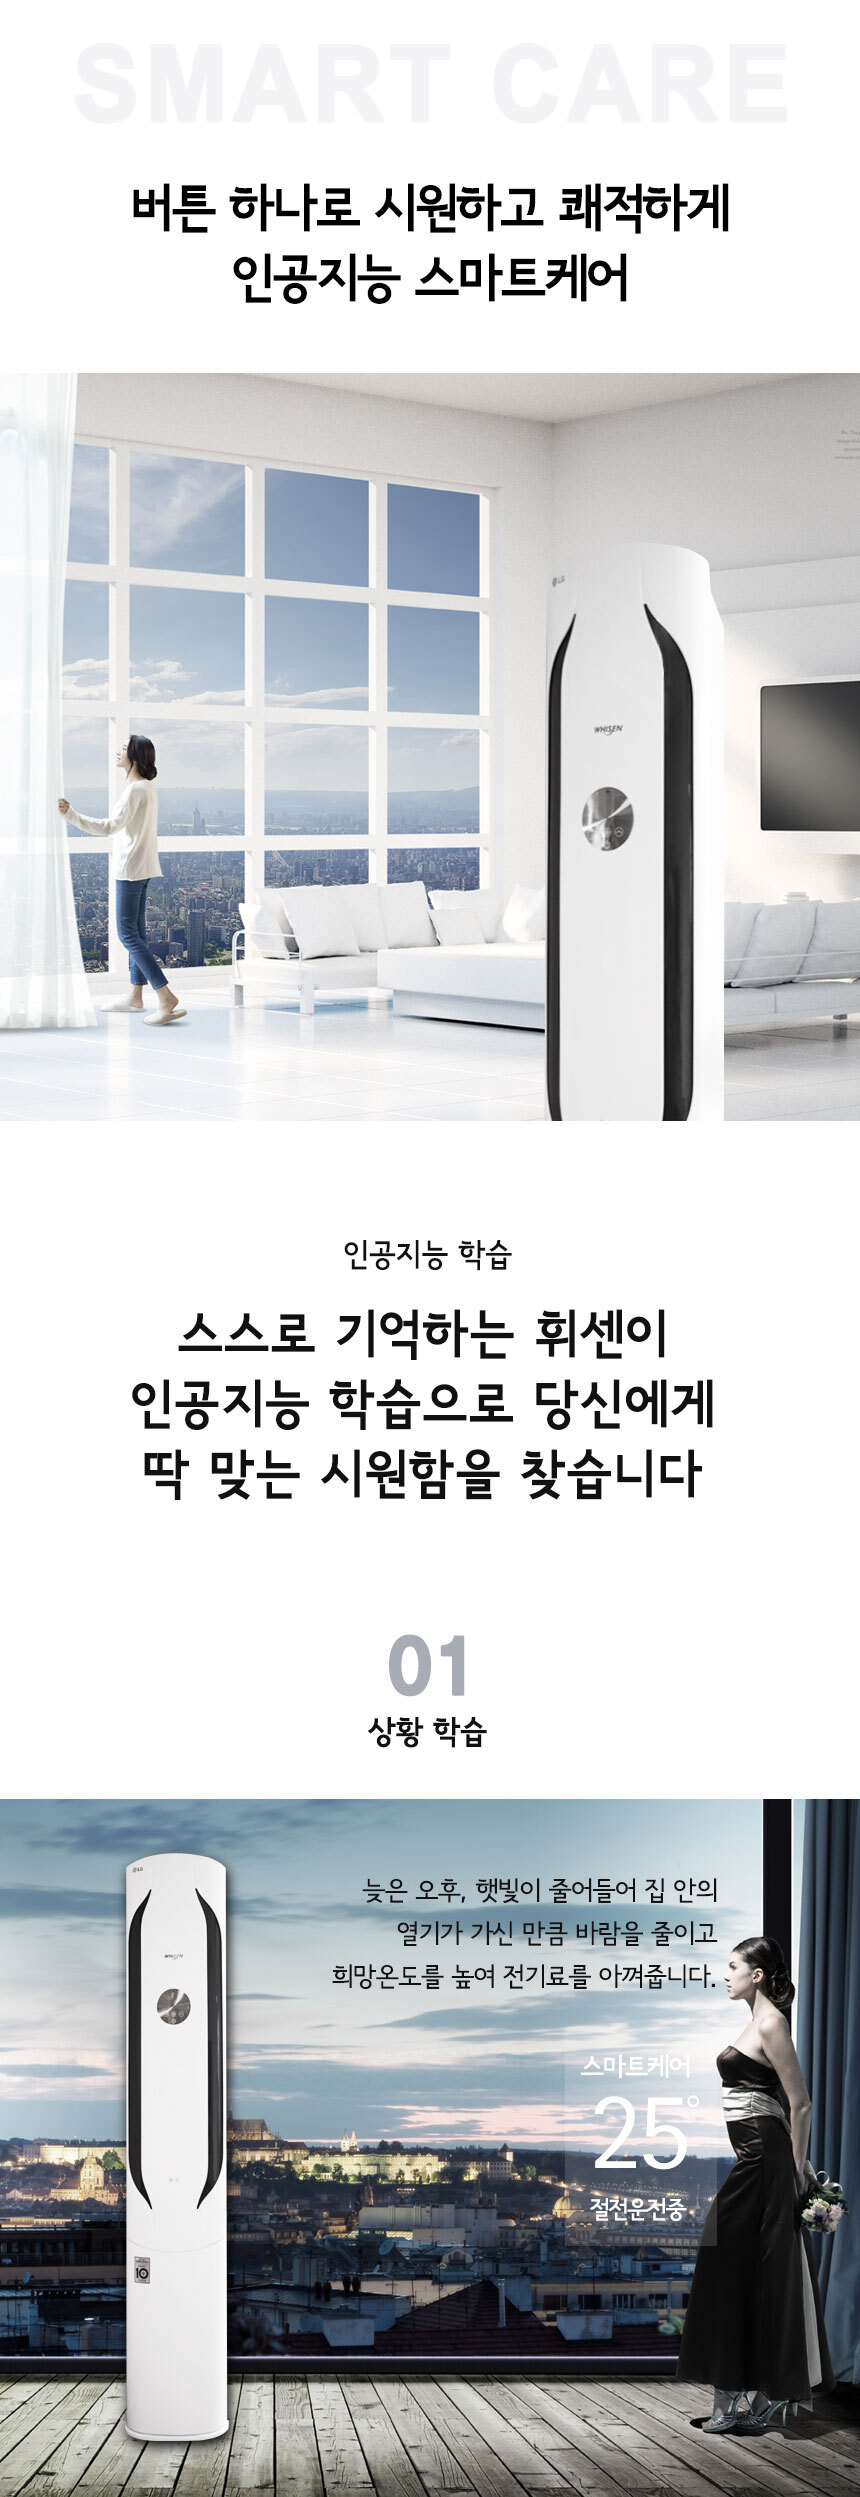 aircon product page1